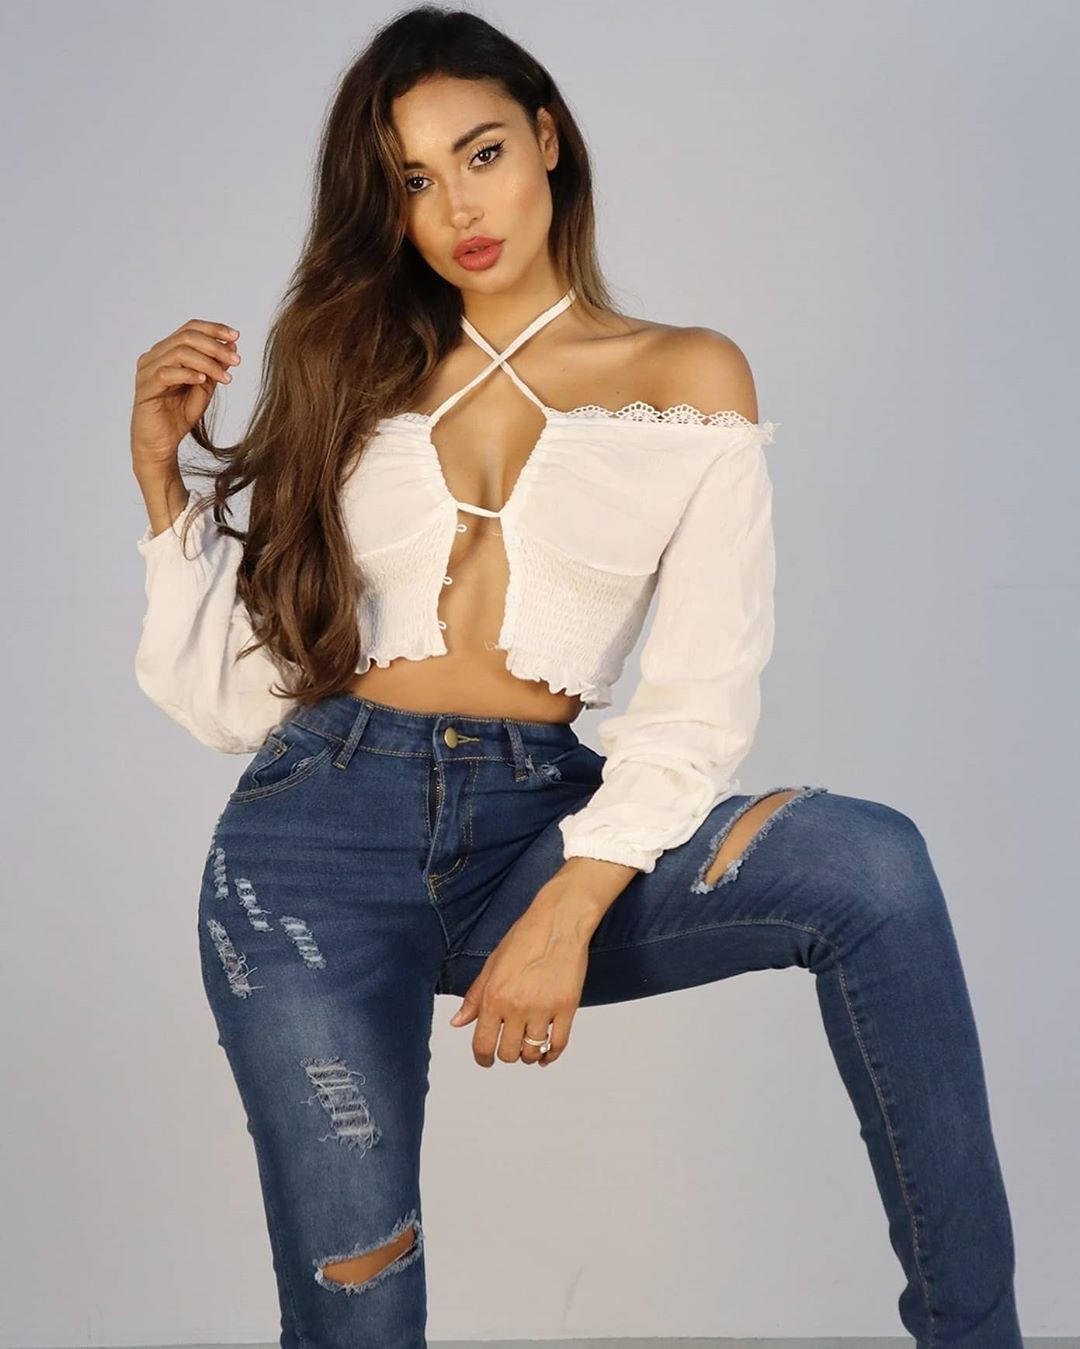 white dress for women with denim, jeans, best photoshoot ideas